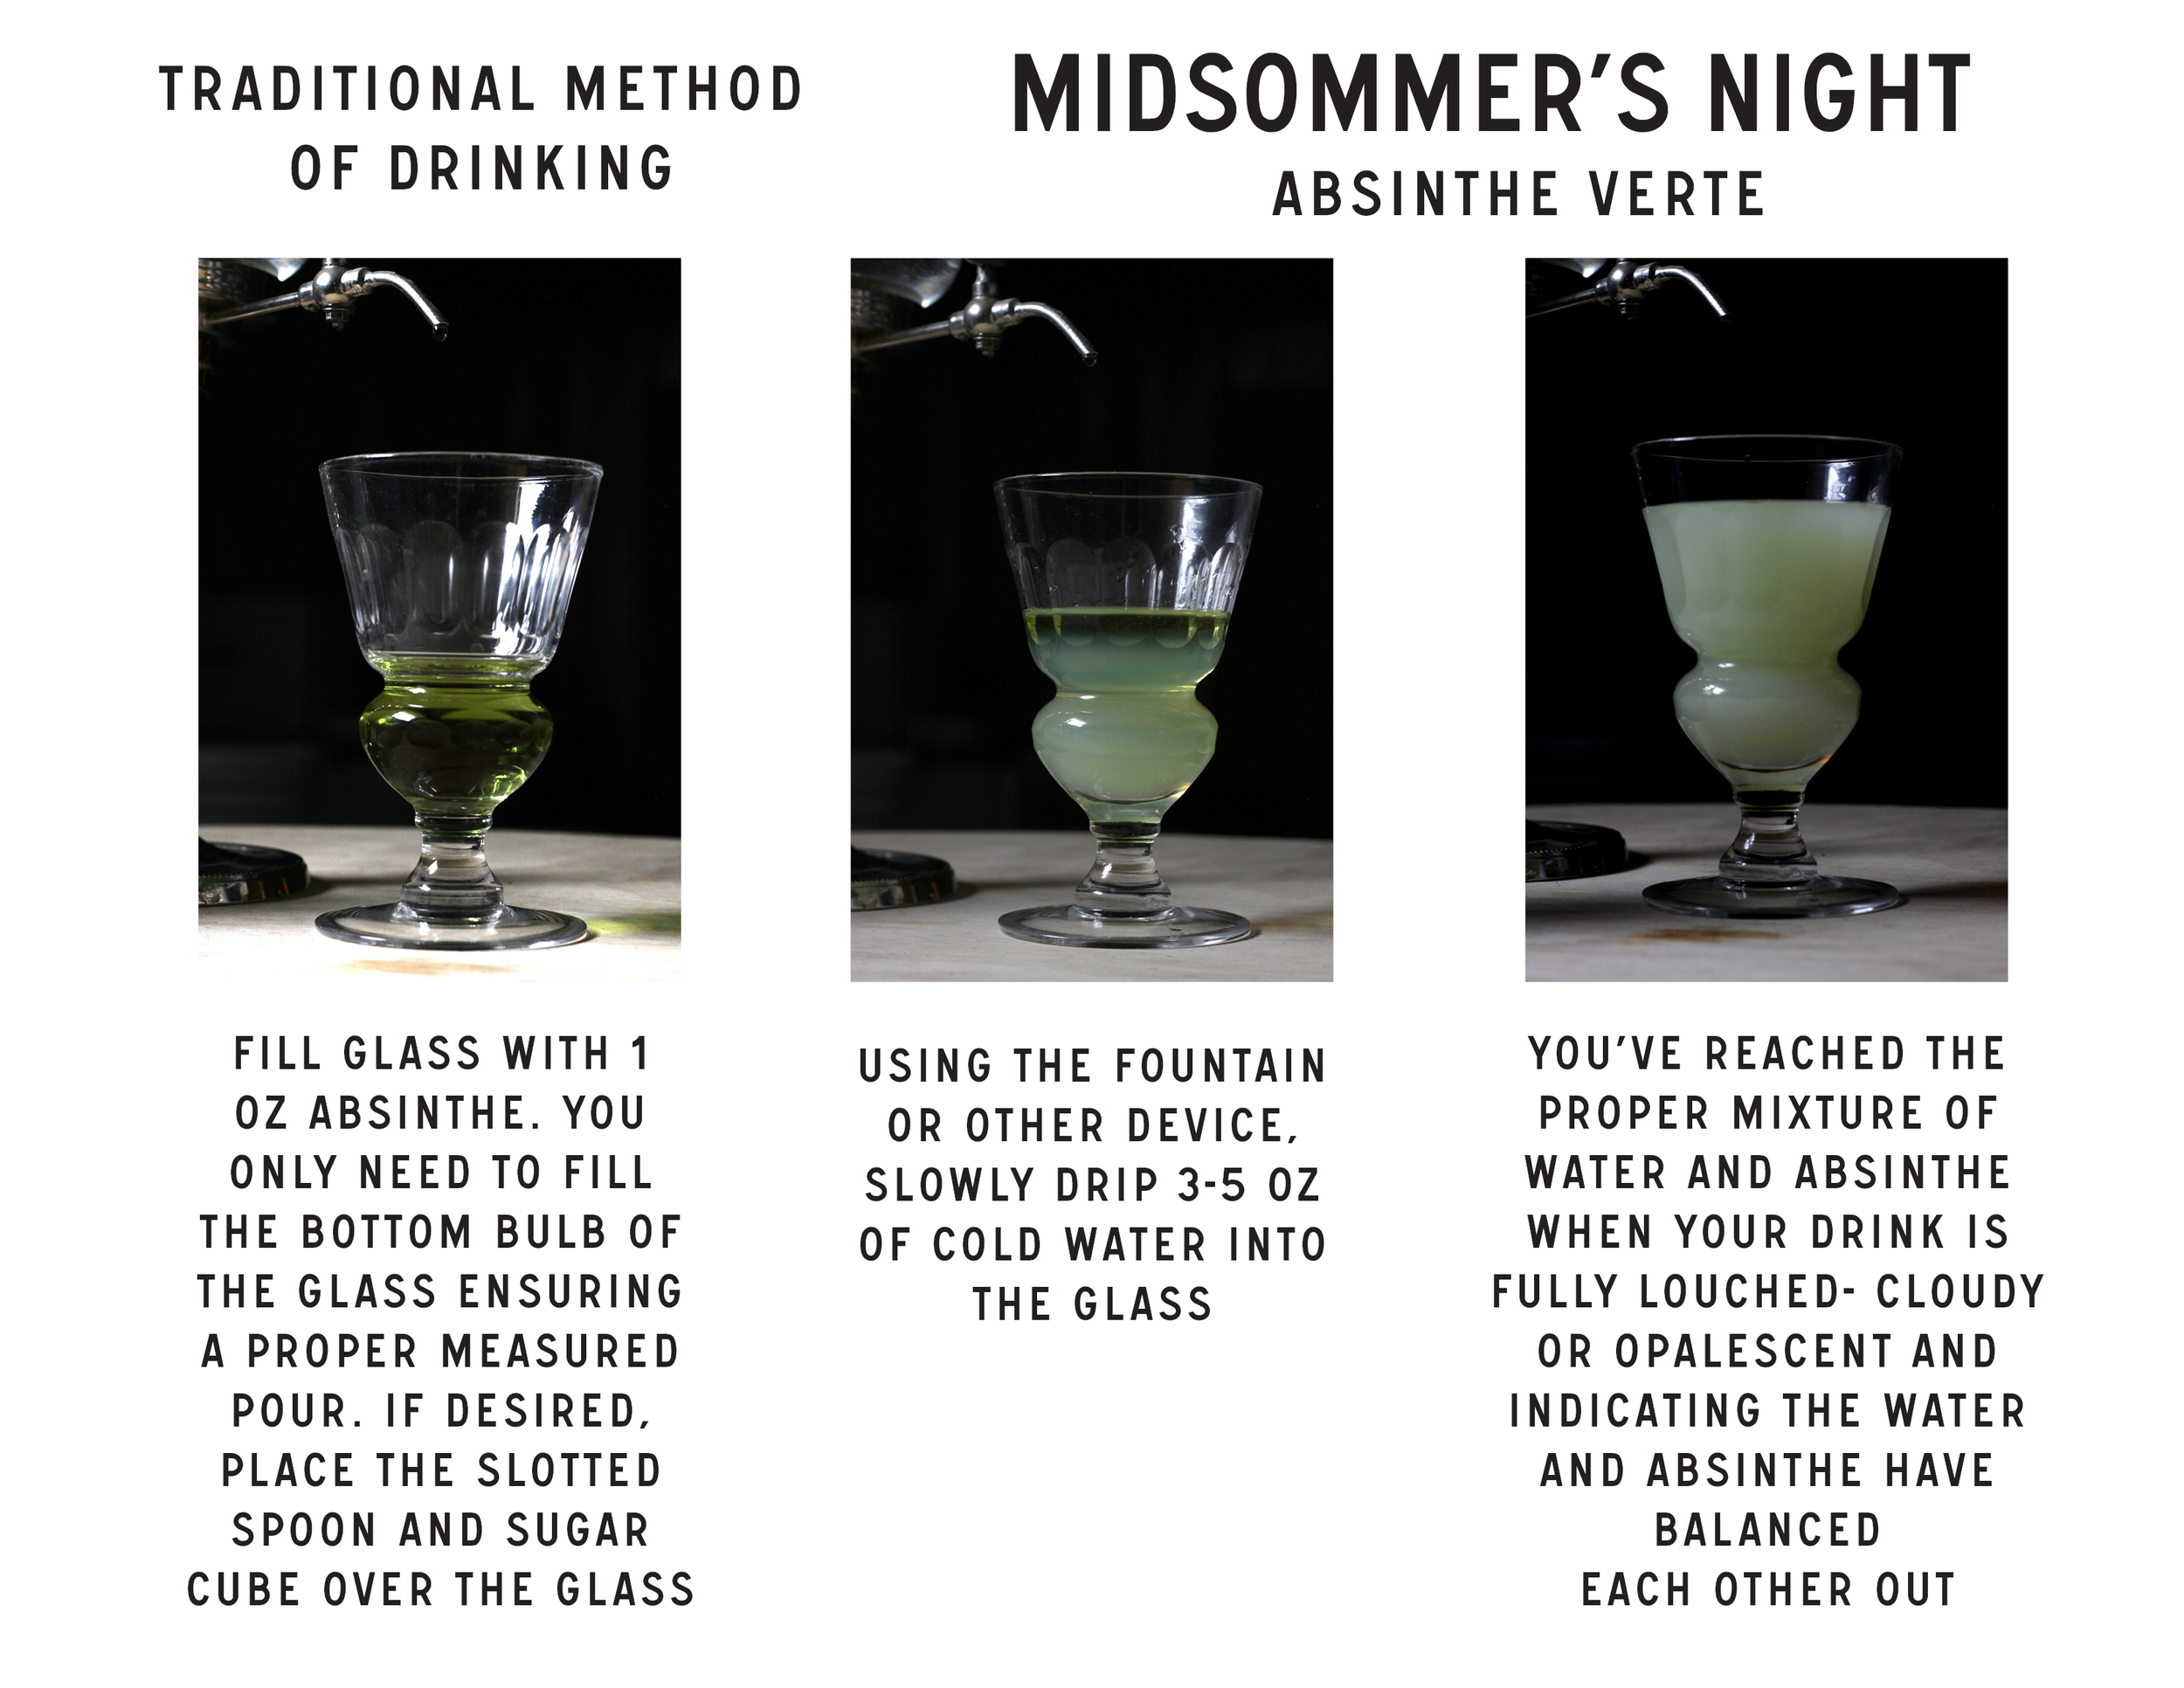 midsommers_night_traditional_drinking.png